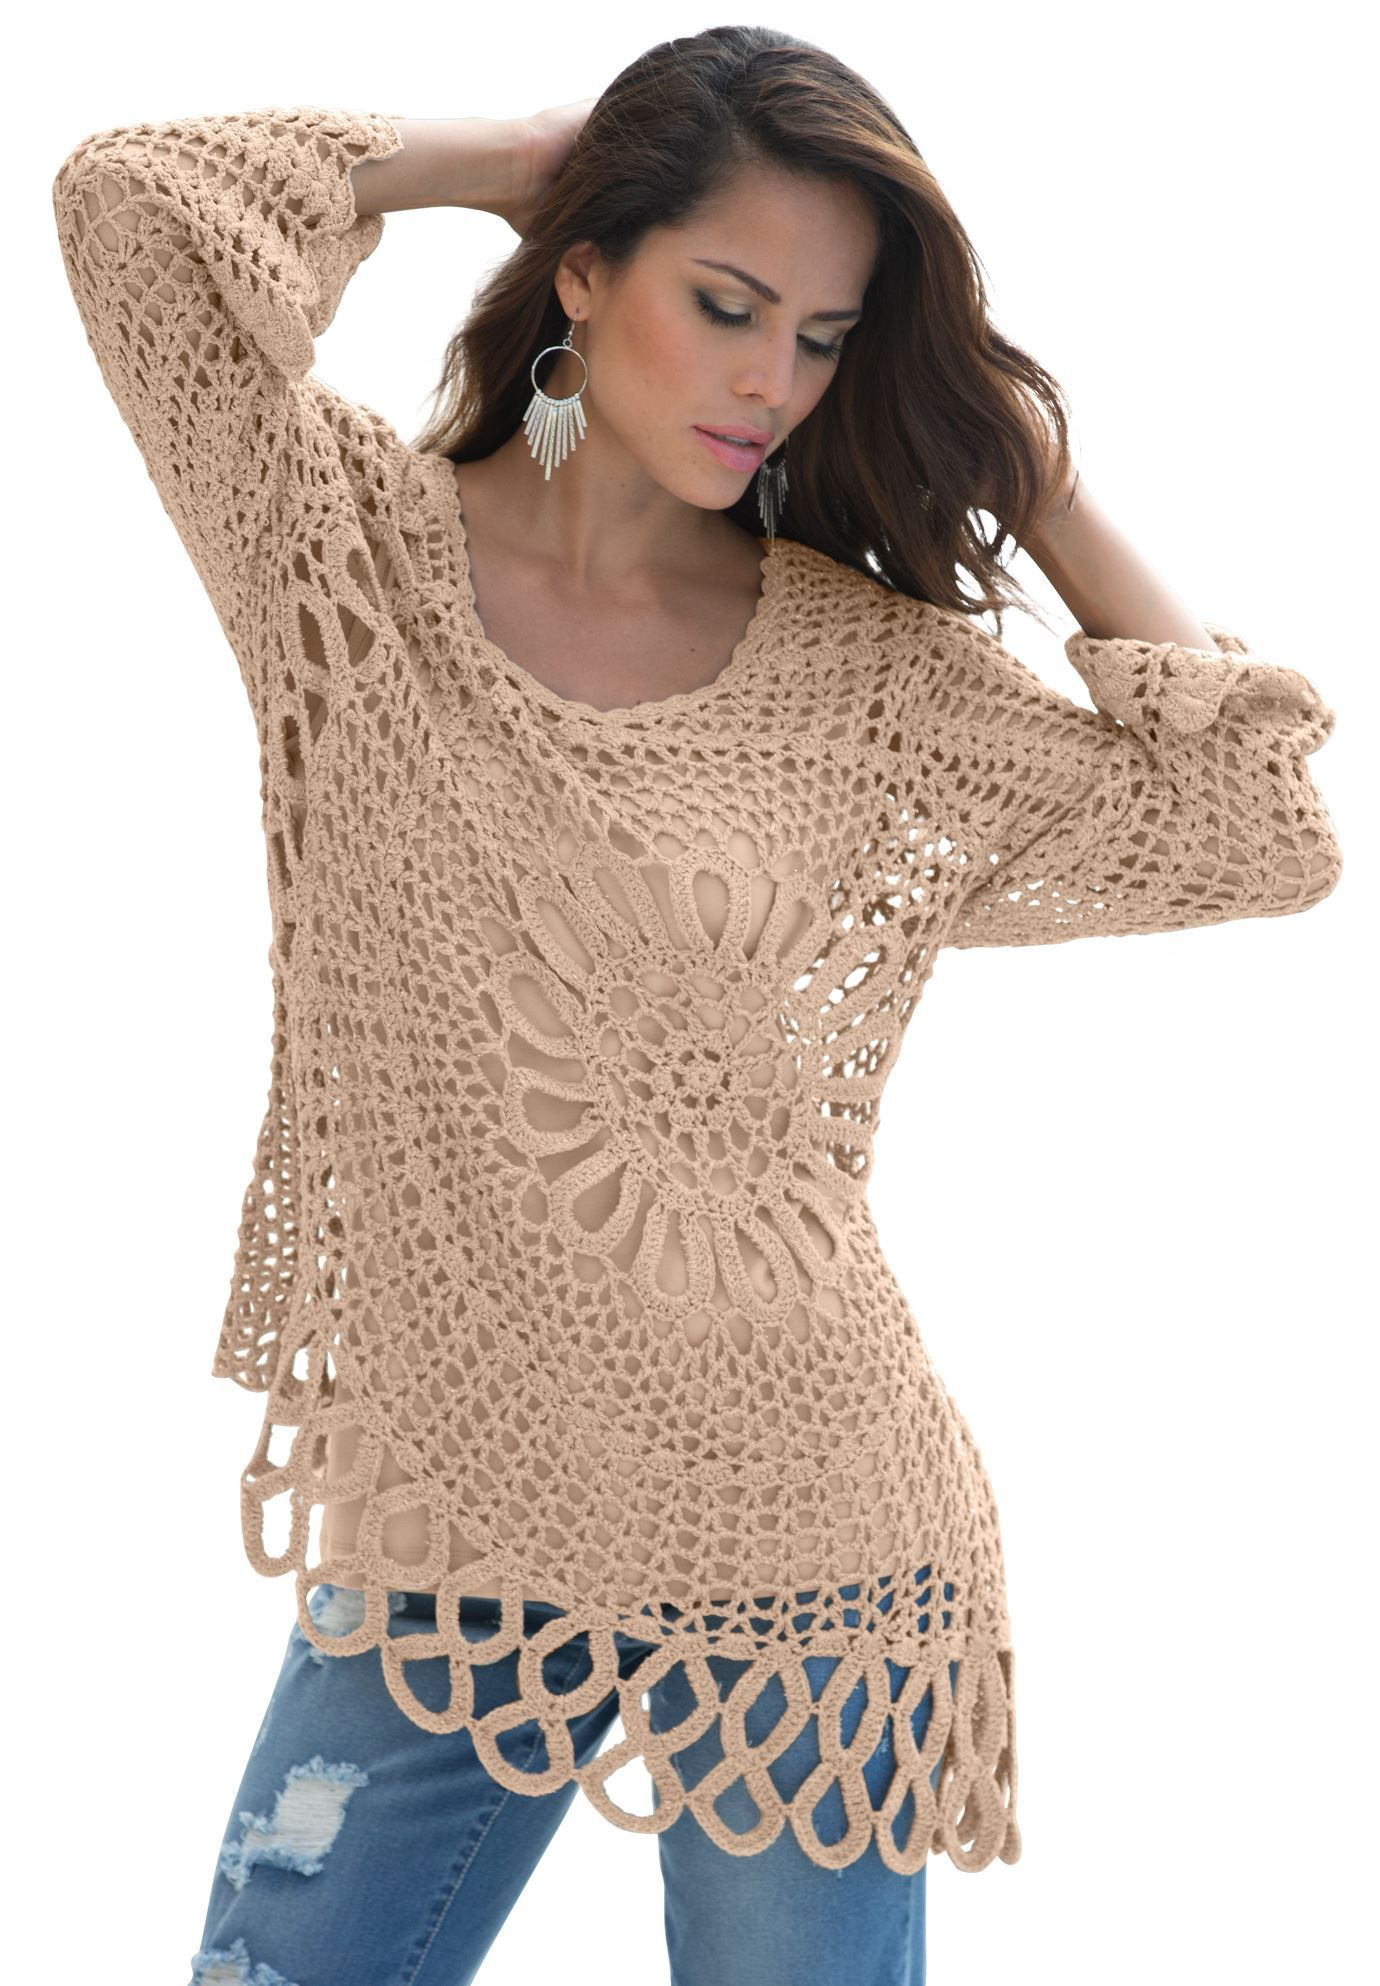 Roamans Taillissime Plus Size Grey Asymmetric Hem Dress: This Starburst Crochet Plus Size Sweater By Denim 24/7